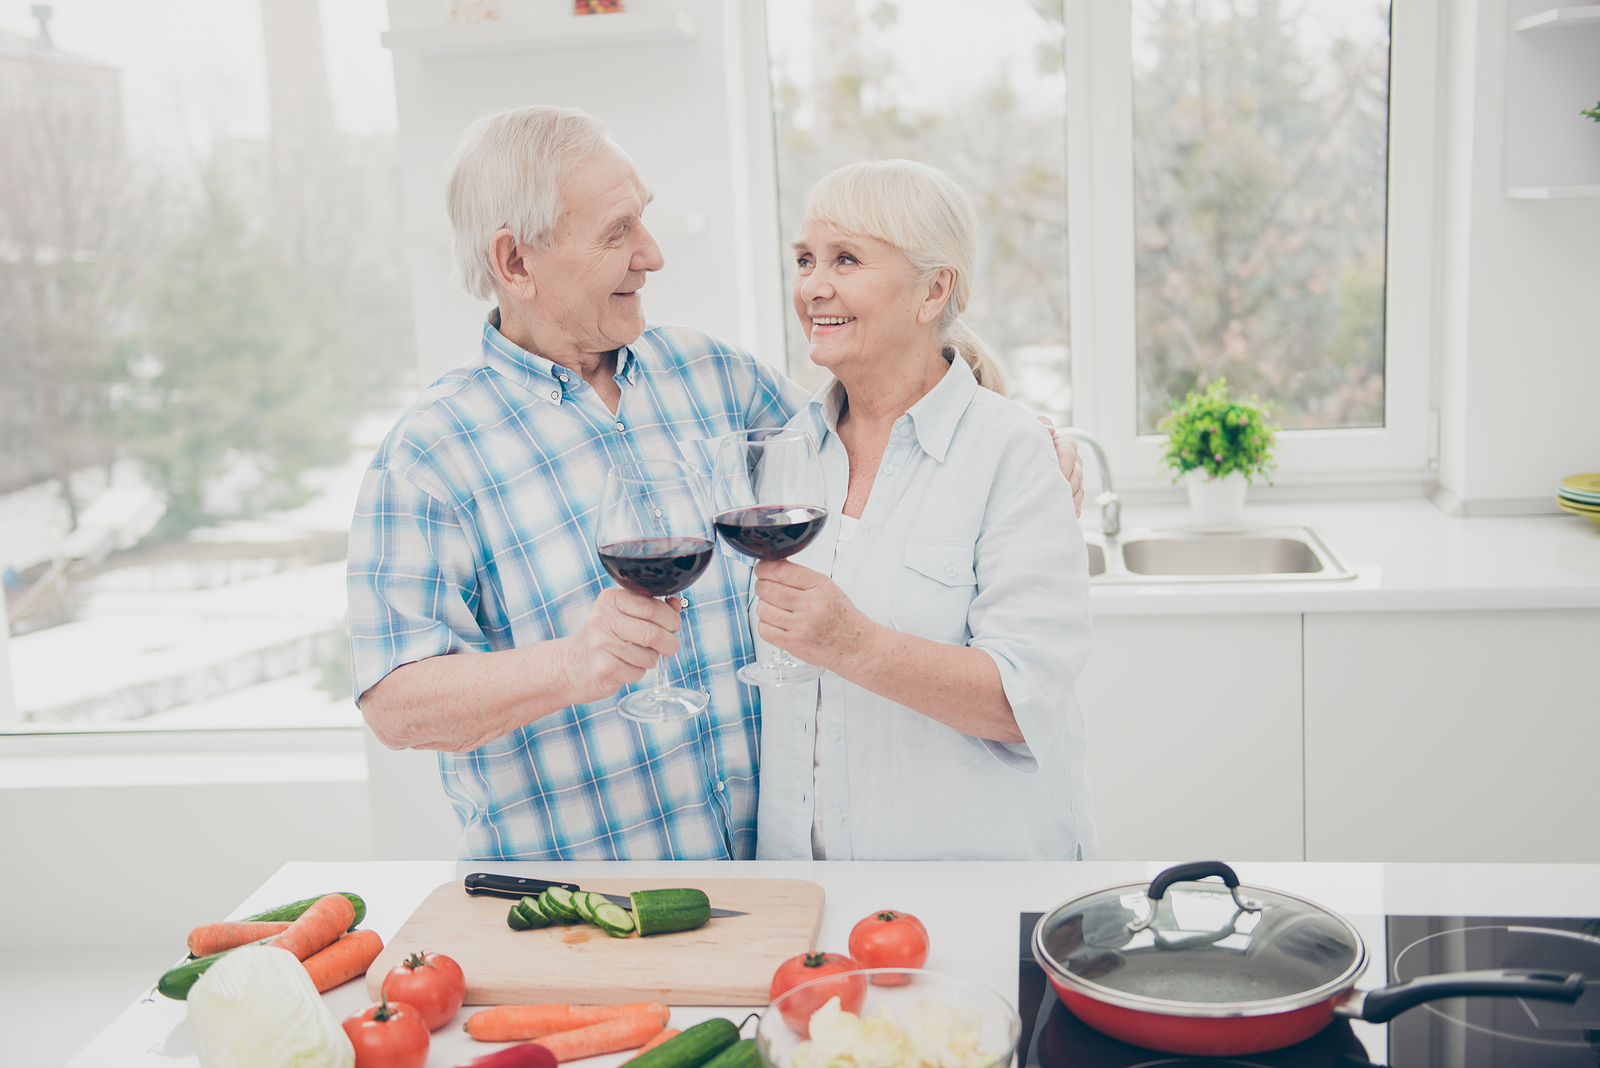 Cheese and red wine every day keep us mentally sharp as we age